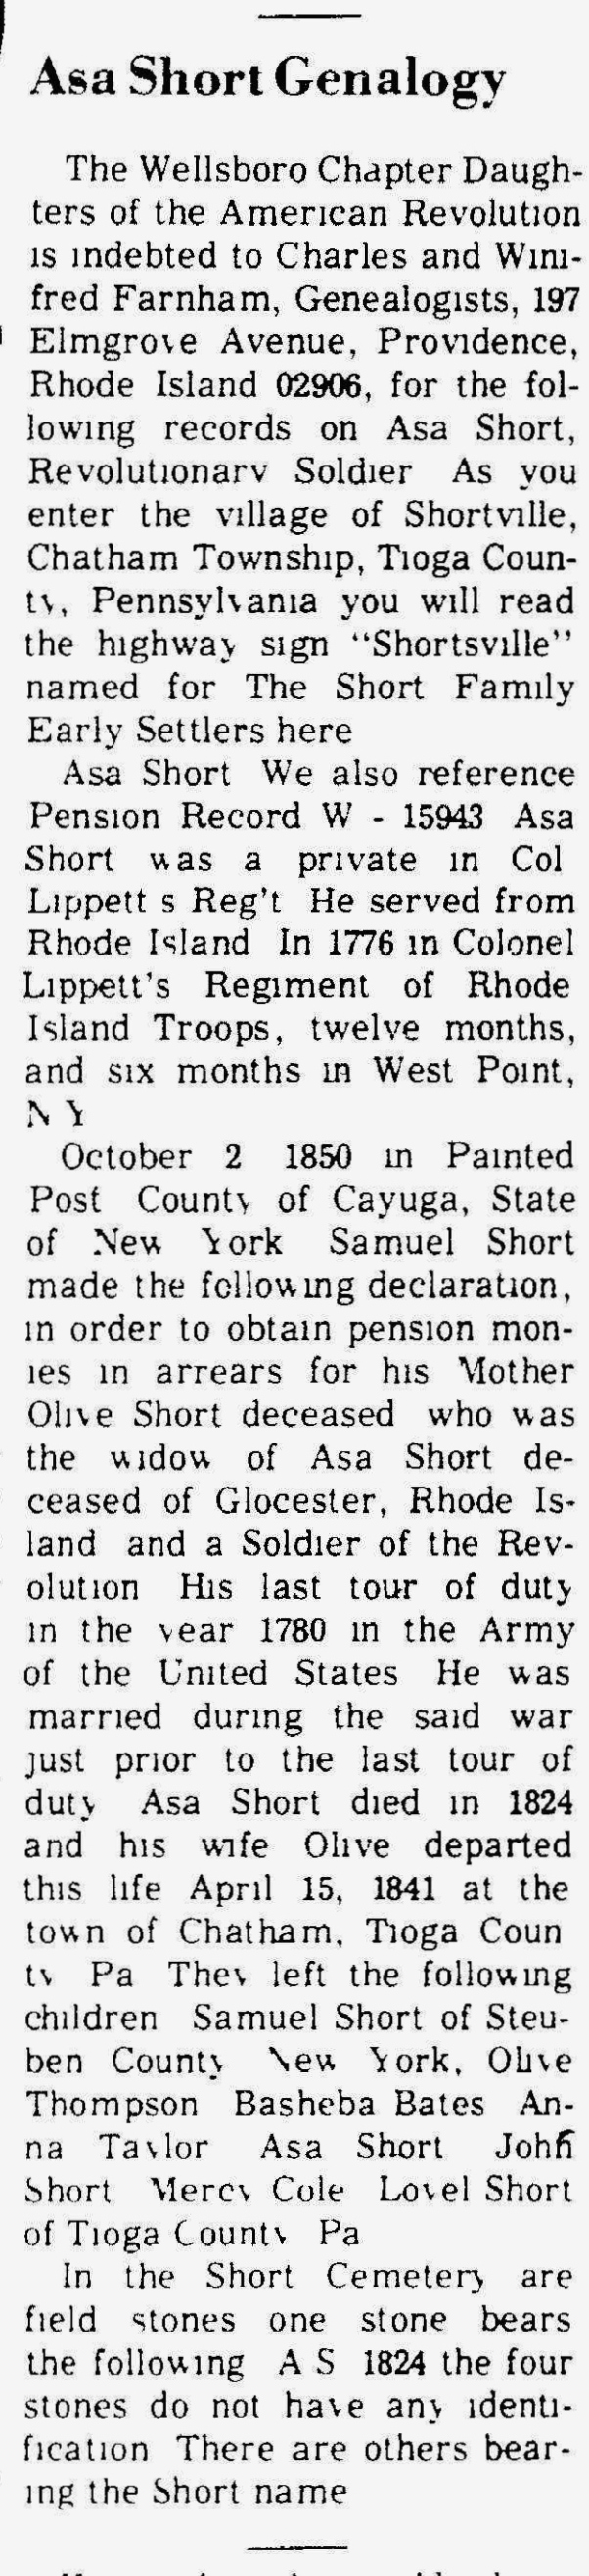 June 14, 1973 Asa Short Genalogy - The Wellsboro Gazette (Wellsboro, Pennsylvania)